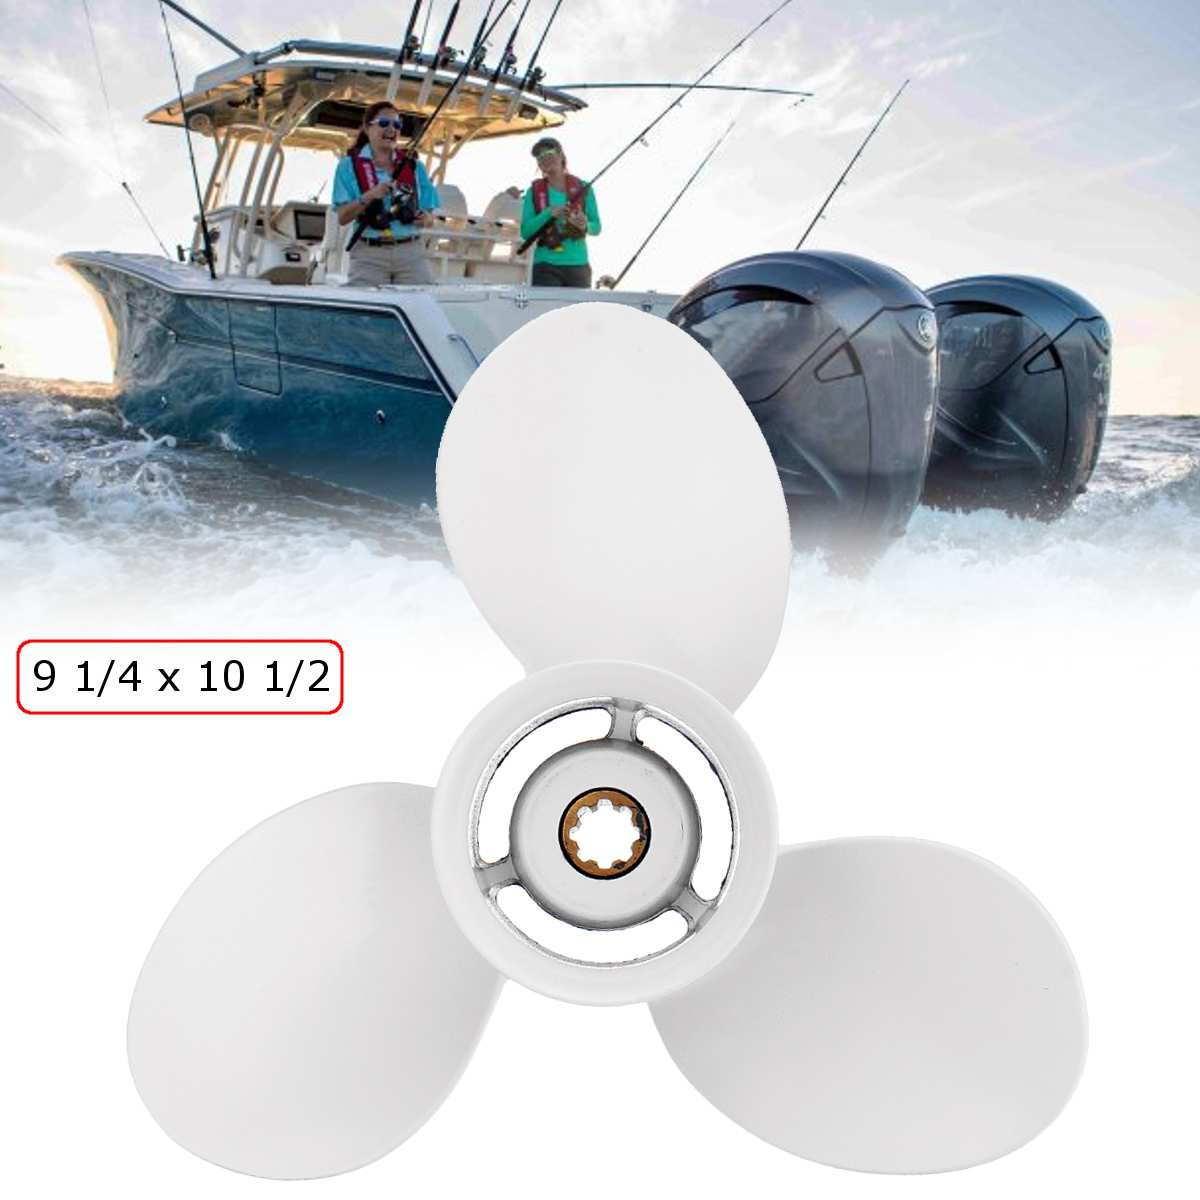 Outboard Propeller 683-45943-00-EL 9 1/4 X 10 1/2 White For Yamaha 9.9-20HP Aluminum Alloy R-Rotation 3 Blades 8 Spline Tooths